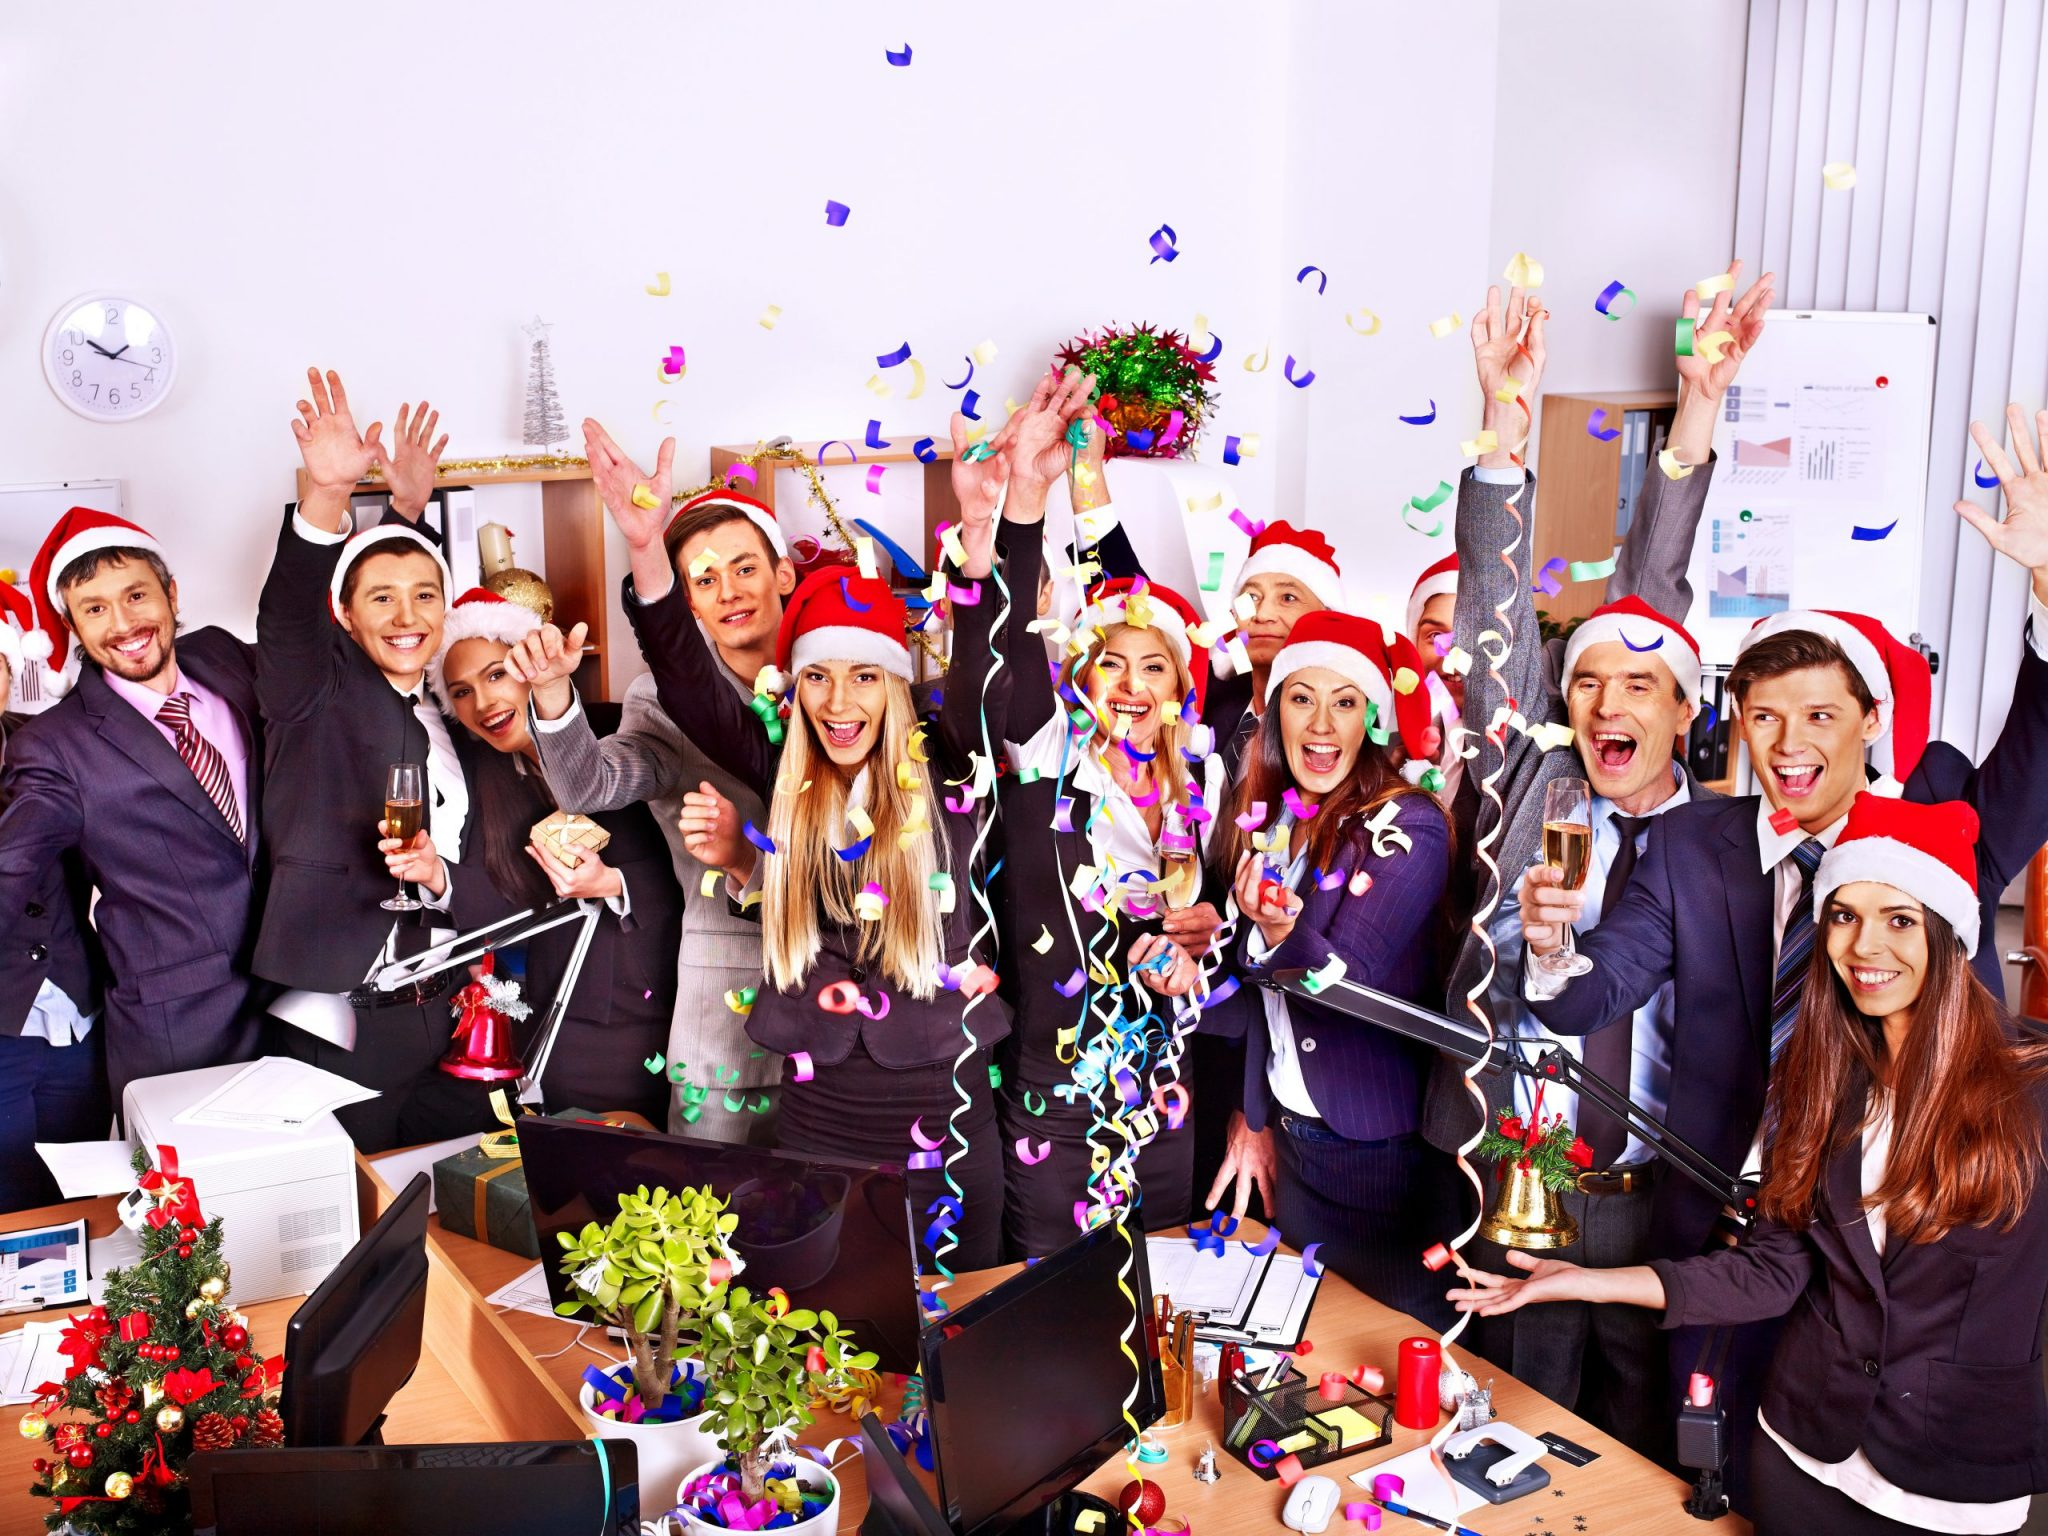 Merry Christmas from the wattsnext team! - 2021 - Wattsnext Group